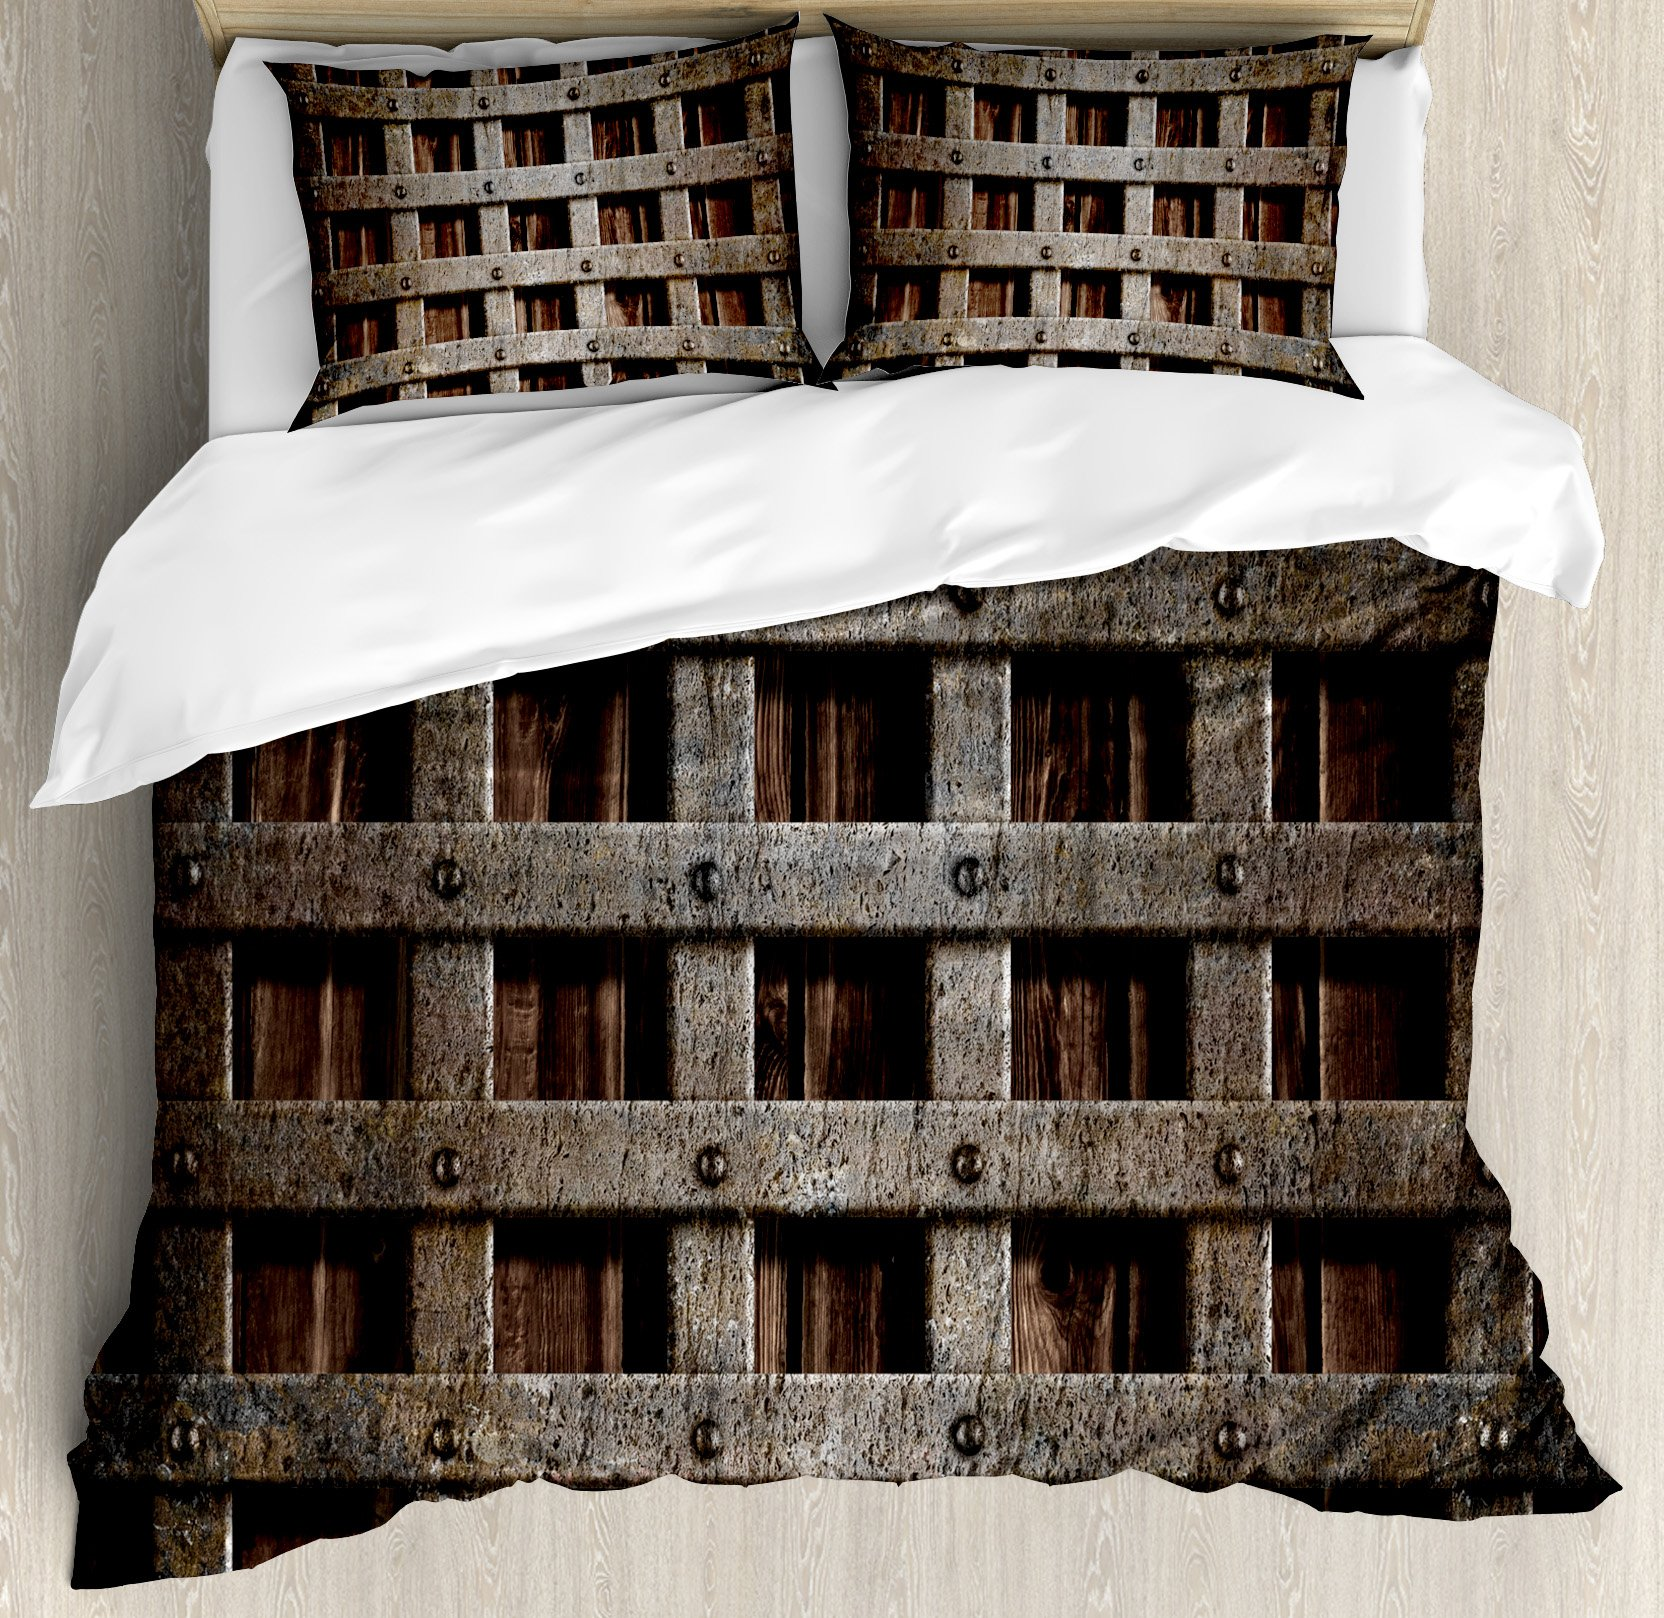 Medieval Duvet Cover Set Queen Size by Ambesonne, Medieval Wooden Castle Wall and Gate Greek Style Mid-Century Designed Artwork Print, Decorative 3 Piece Bedding Set with 2 Pillow Shams, Grey